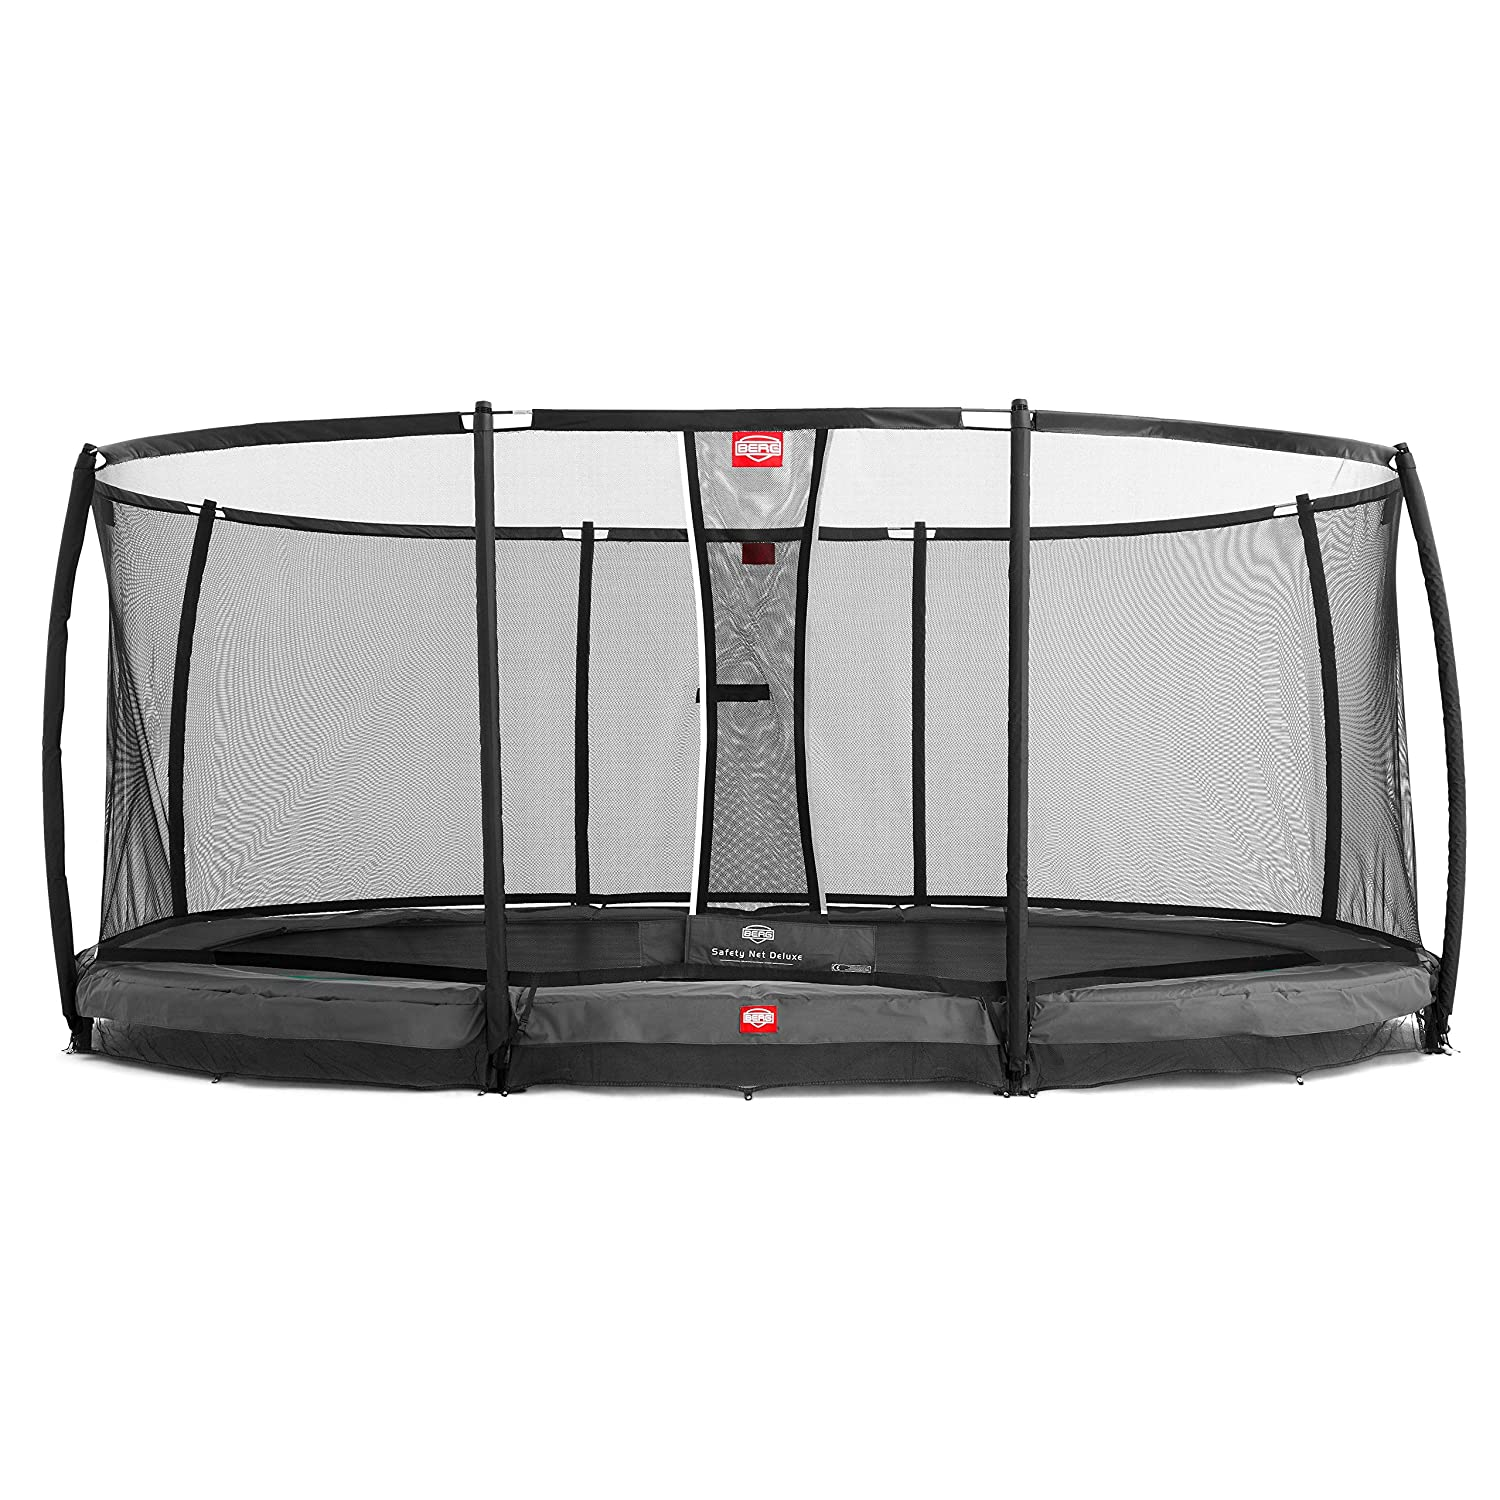 Berg Cama elástica Inground EASYFIT Color Gris con Red de ...